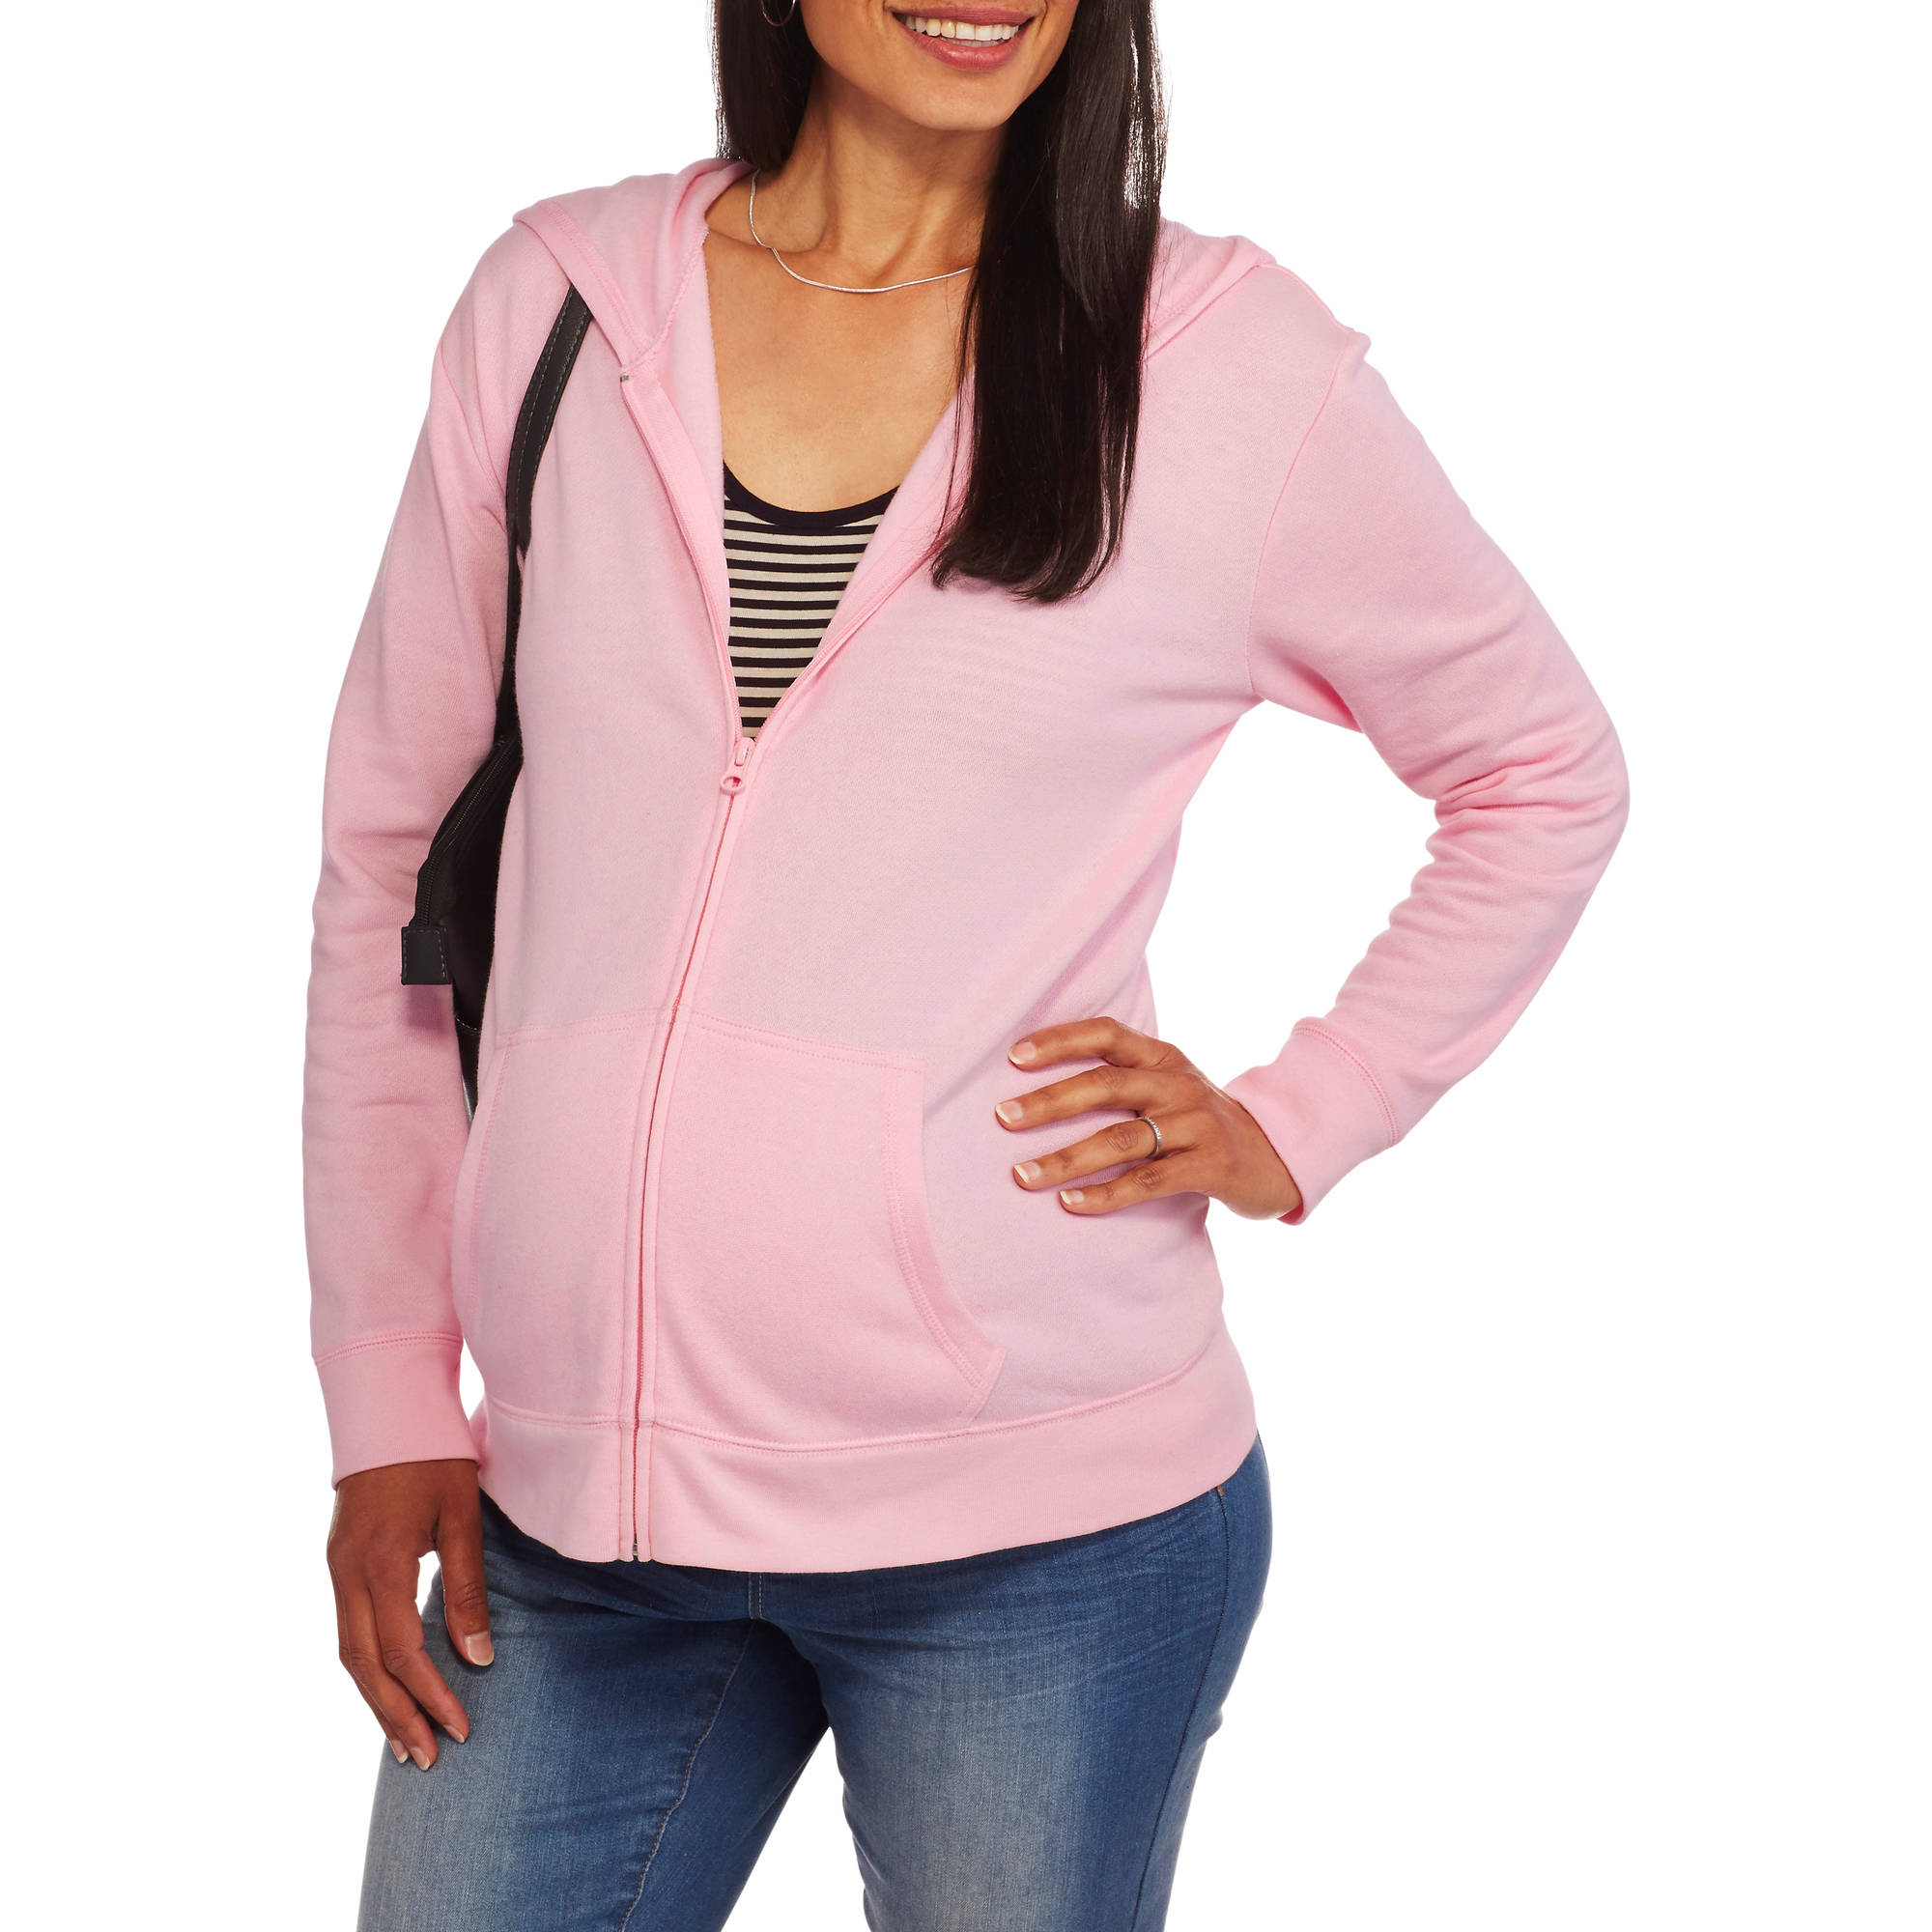 Be warm and comfortable in our maternity hoodies. They are designed for the mom-to-be and available in zip-up or pullover styles. Motherhood Maternity.